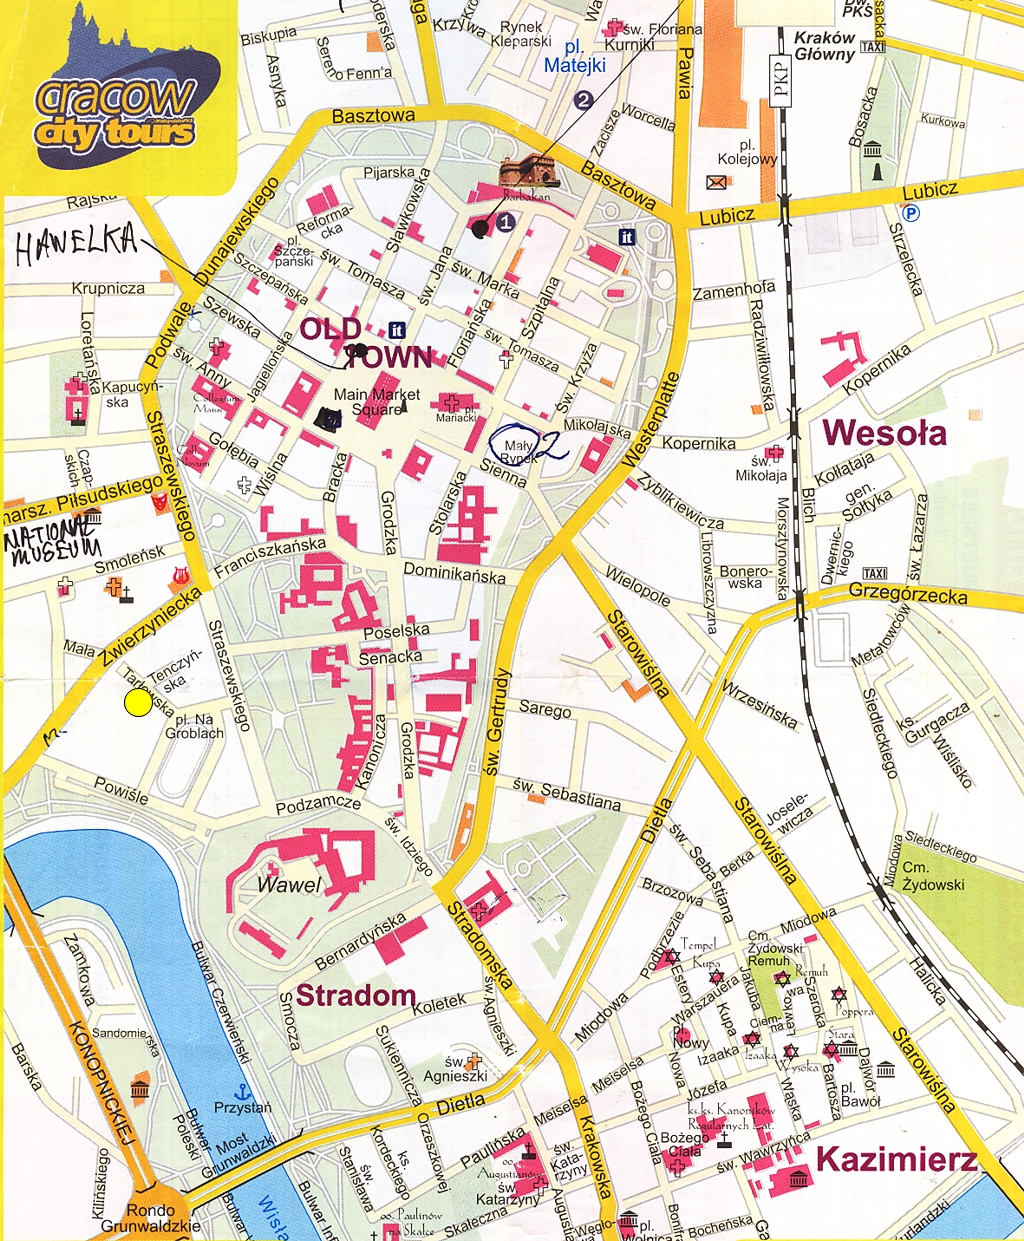 krakow tourist map krakow map free download get it now krakow